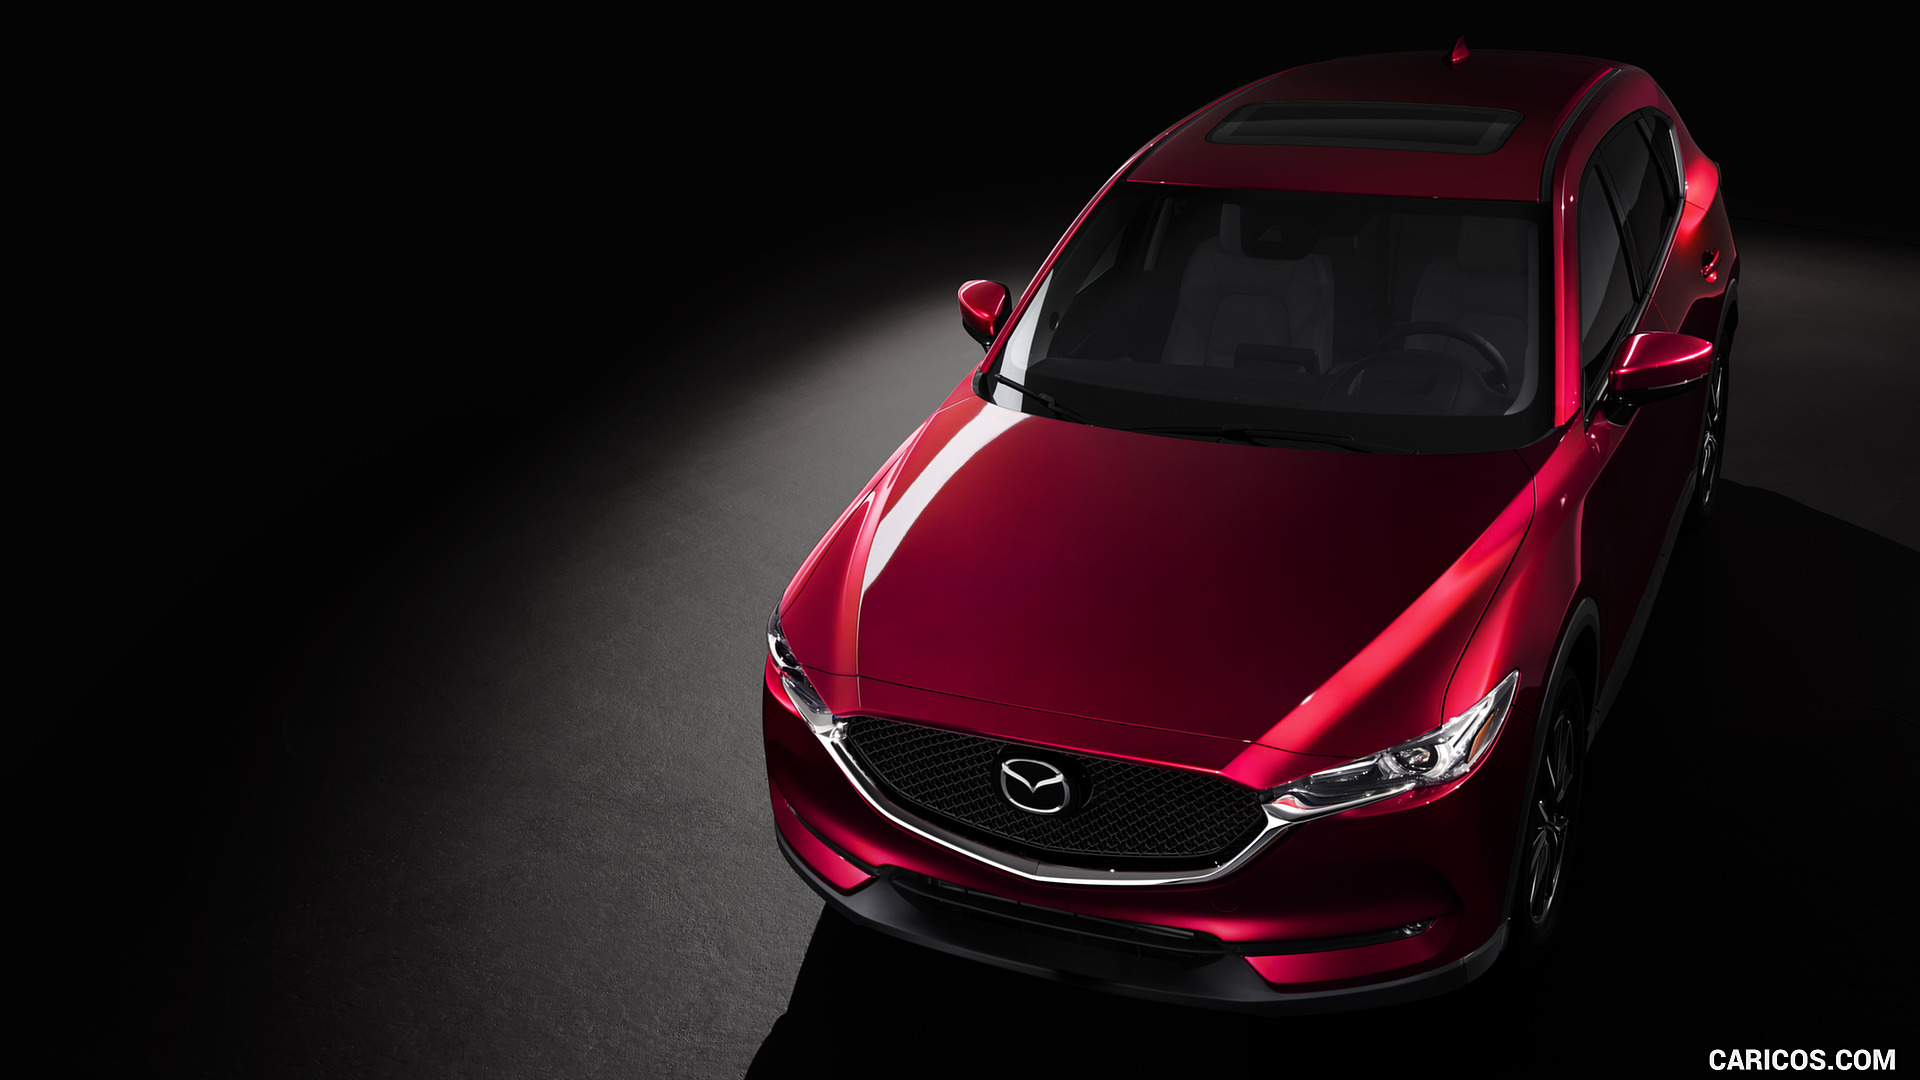 1920x1080 - Mazda CX-5 Wallpapers 14